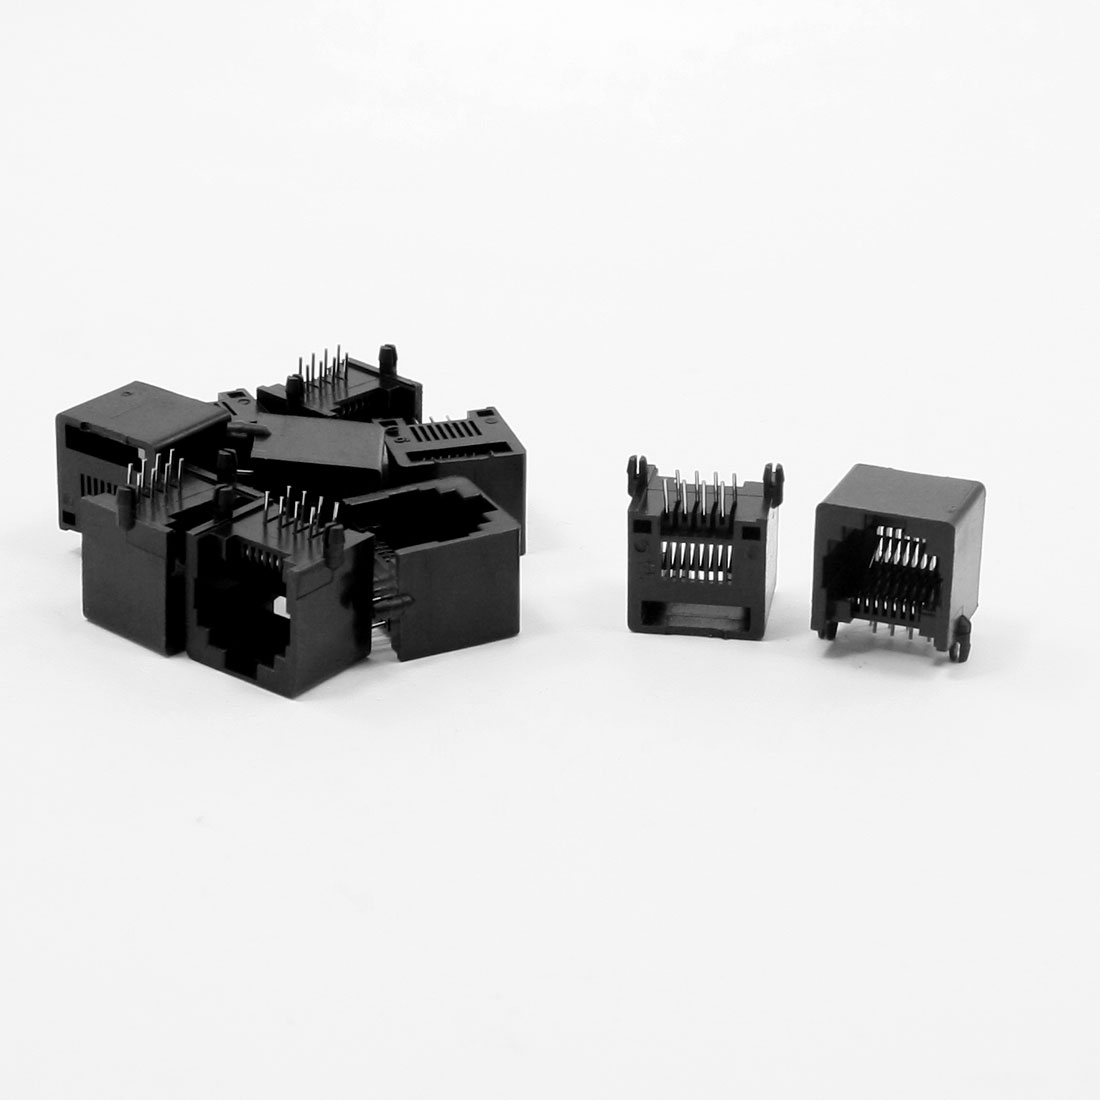 10pcs RJ45 8P8C Computer Internet Network PCB Jack Socket Black